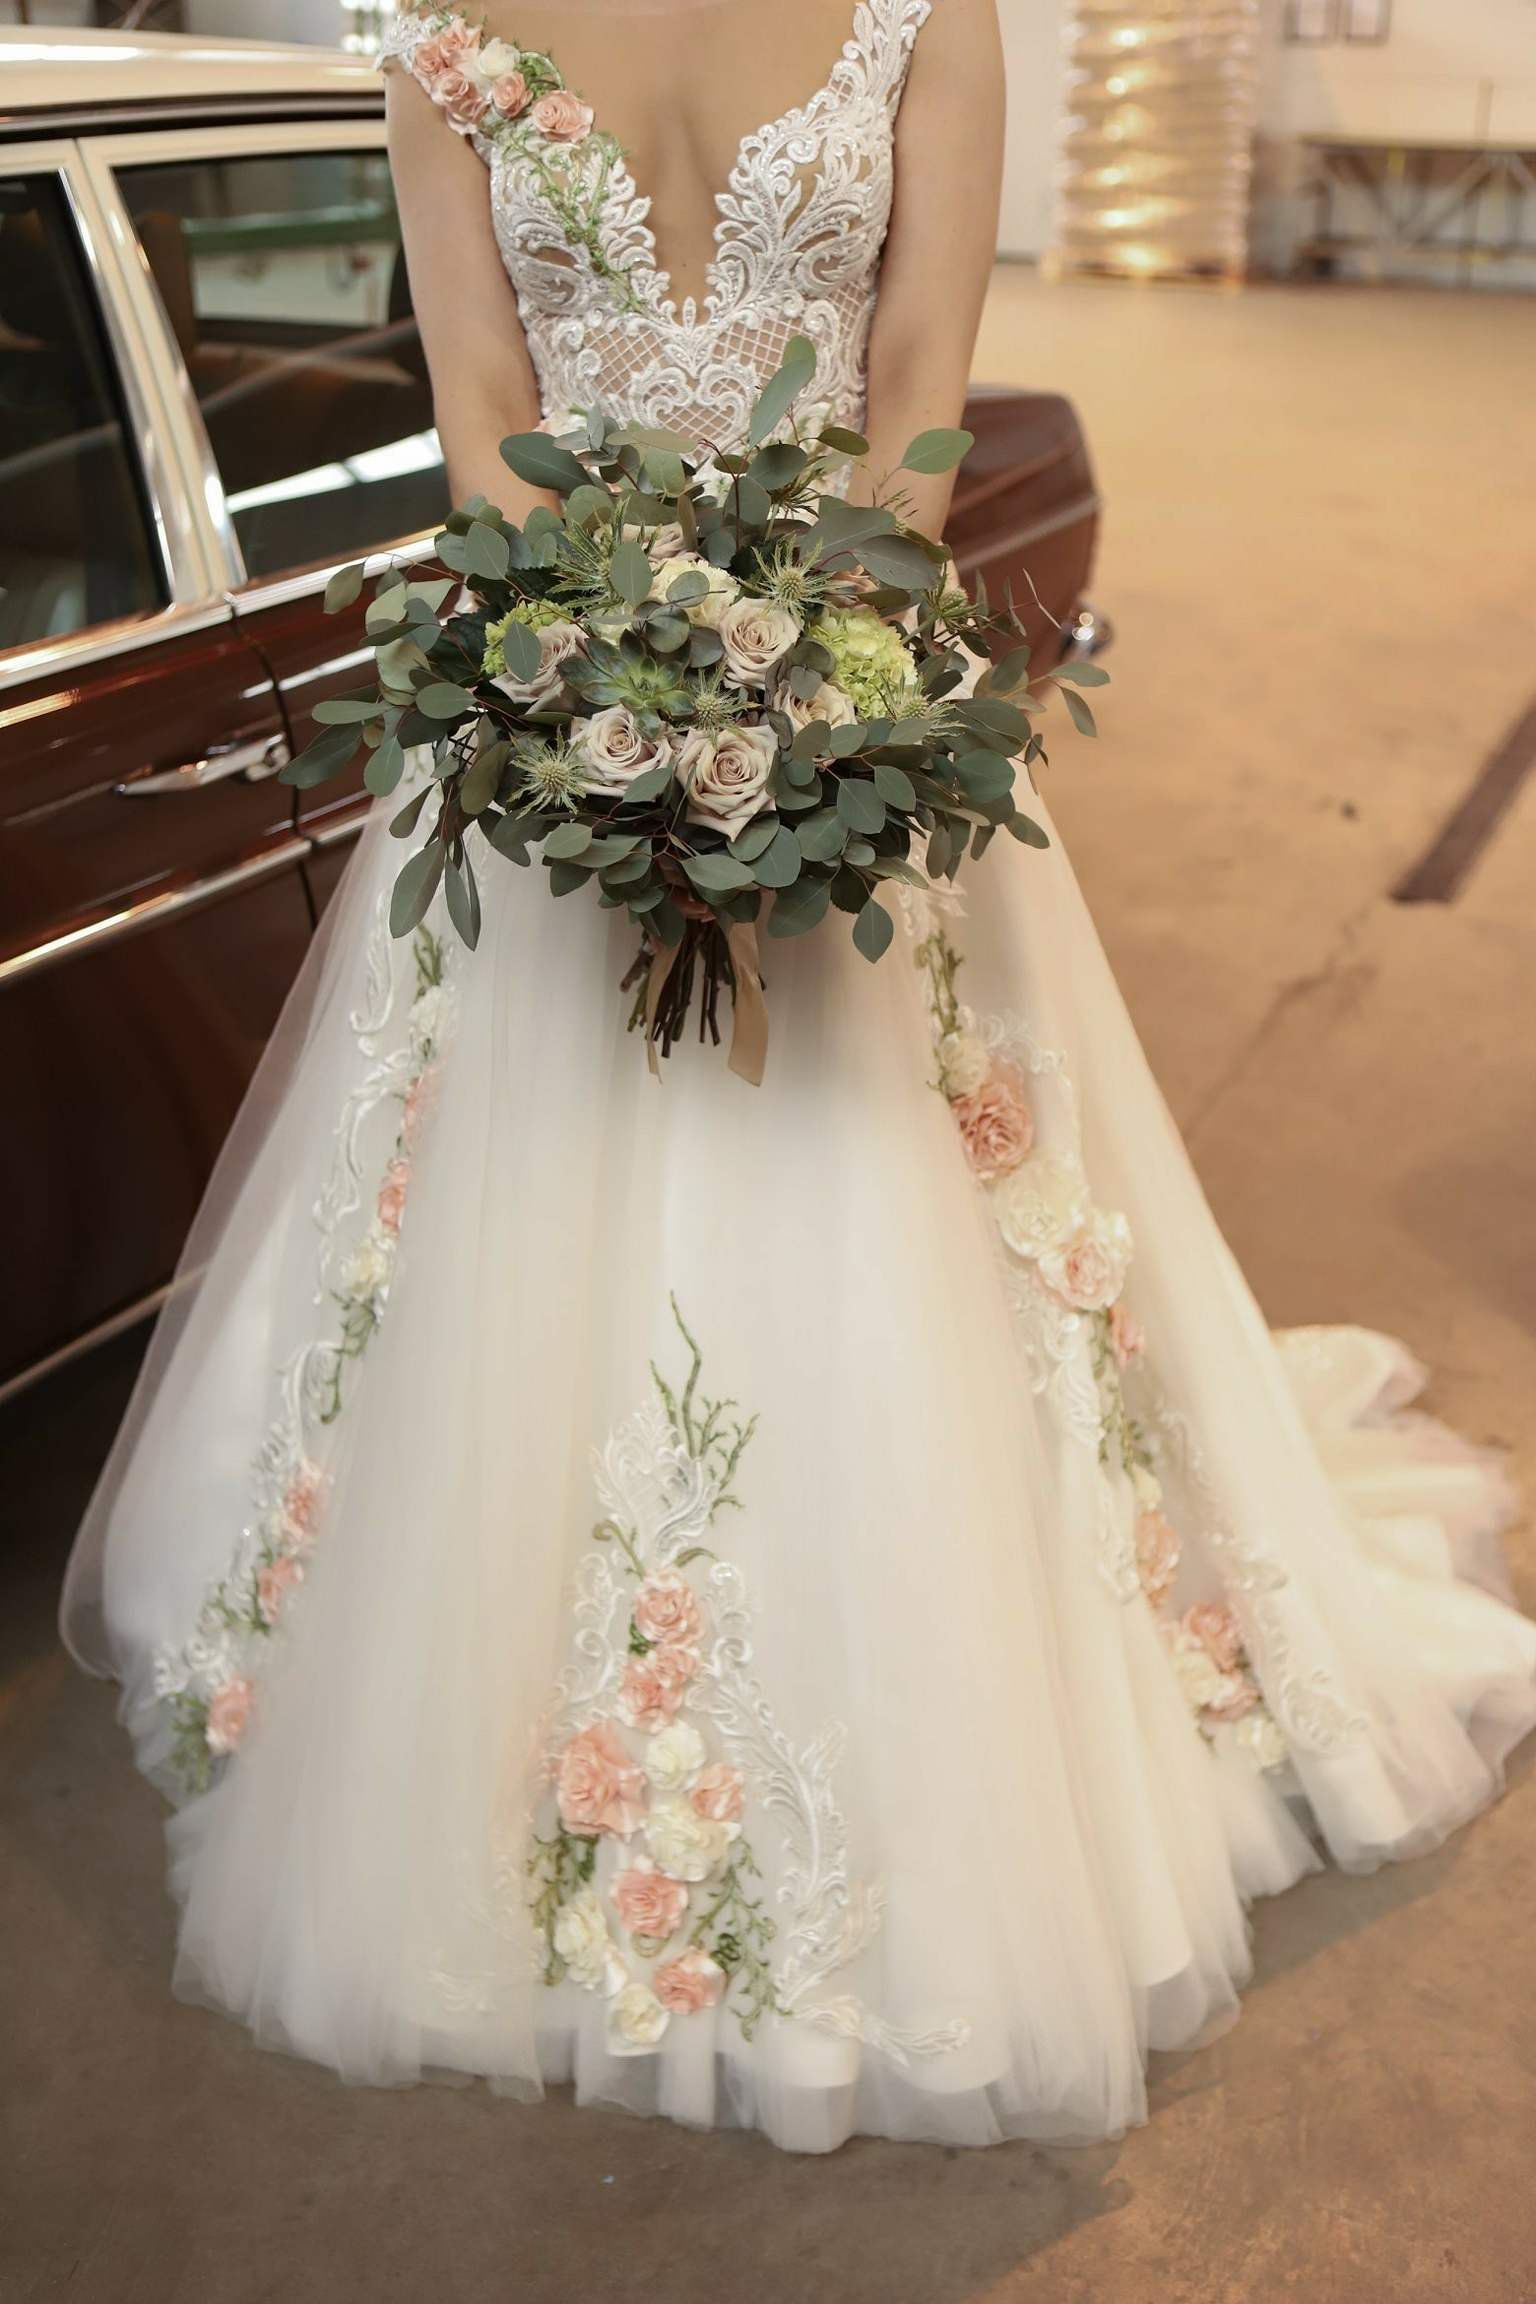 Wedding dress Rose Collection from Inga Ezergale design, until 30th of June 2020 special price 1600EUR, was 2600EUR – organisation 2